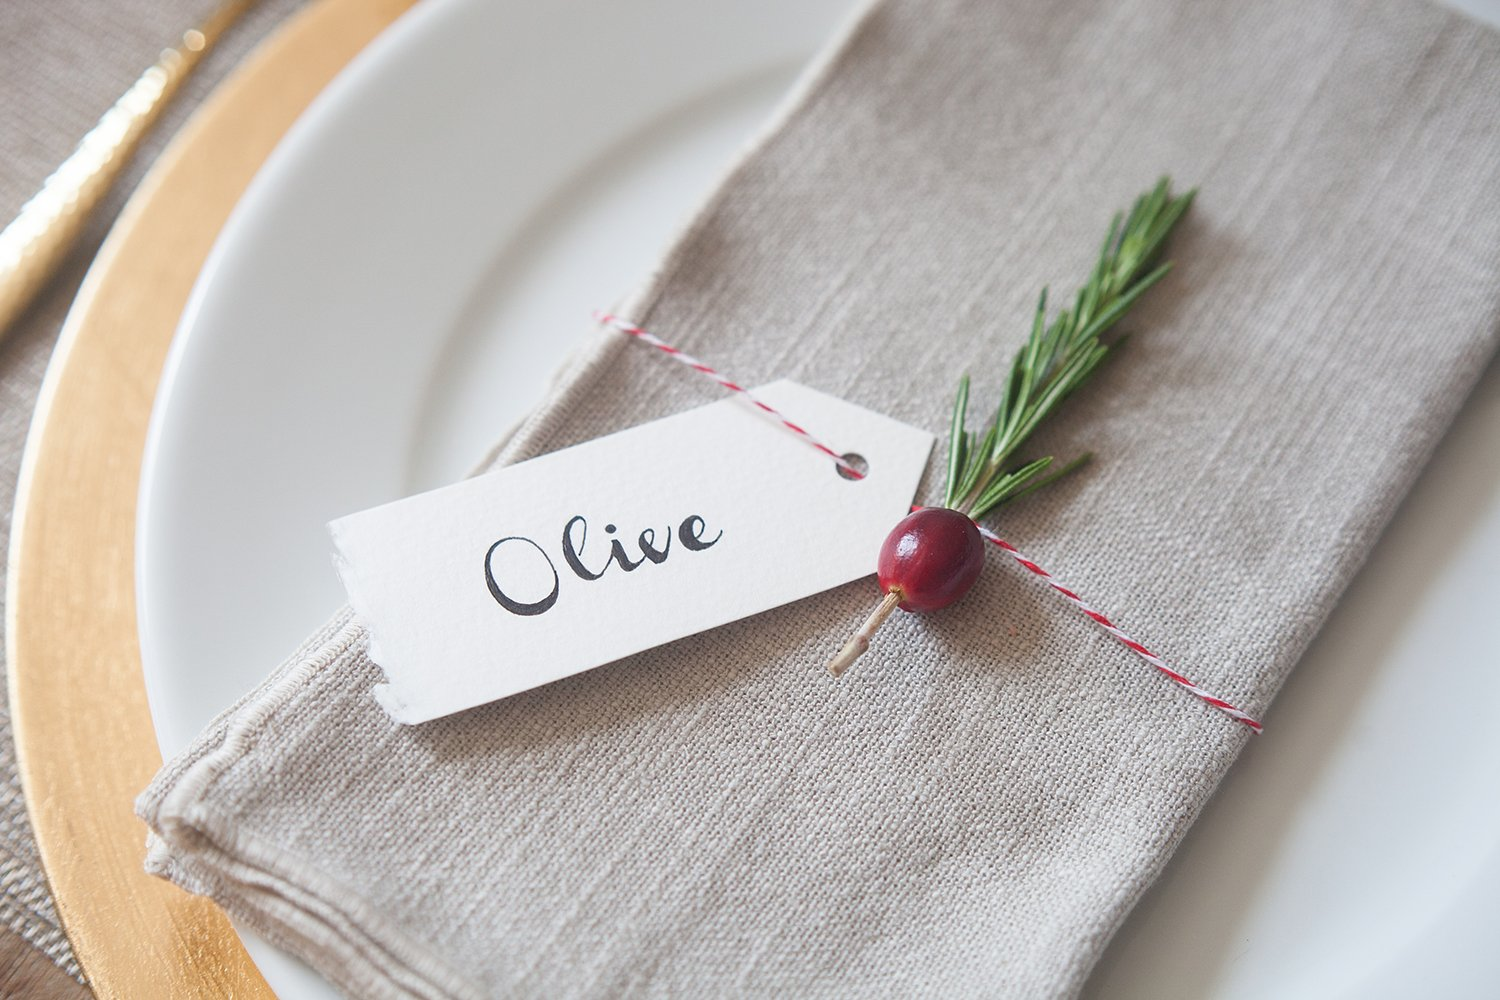 Cranberry & Rosemary Place Cards